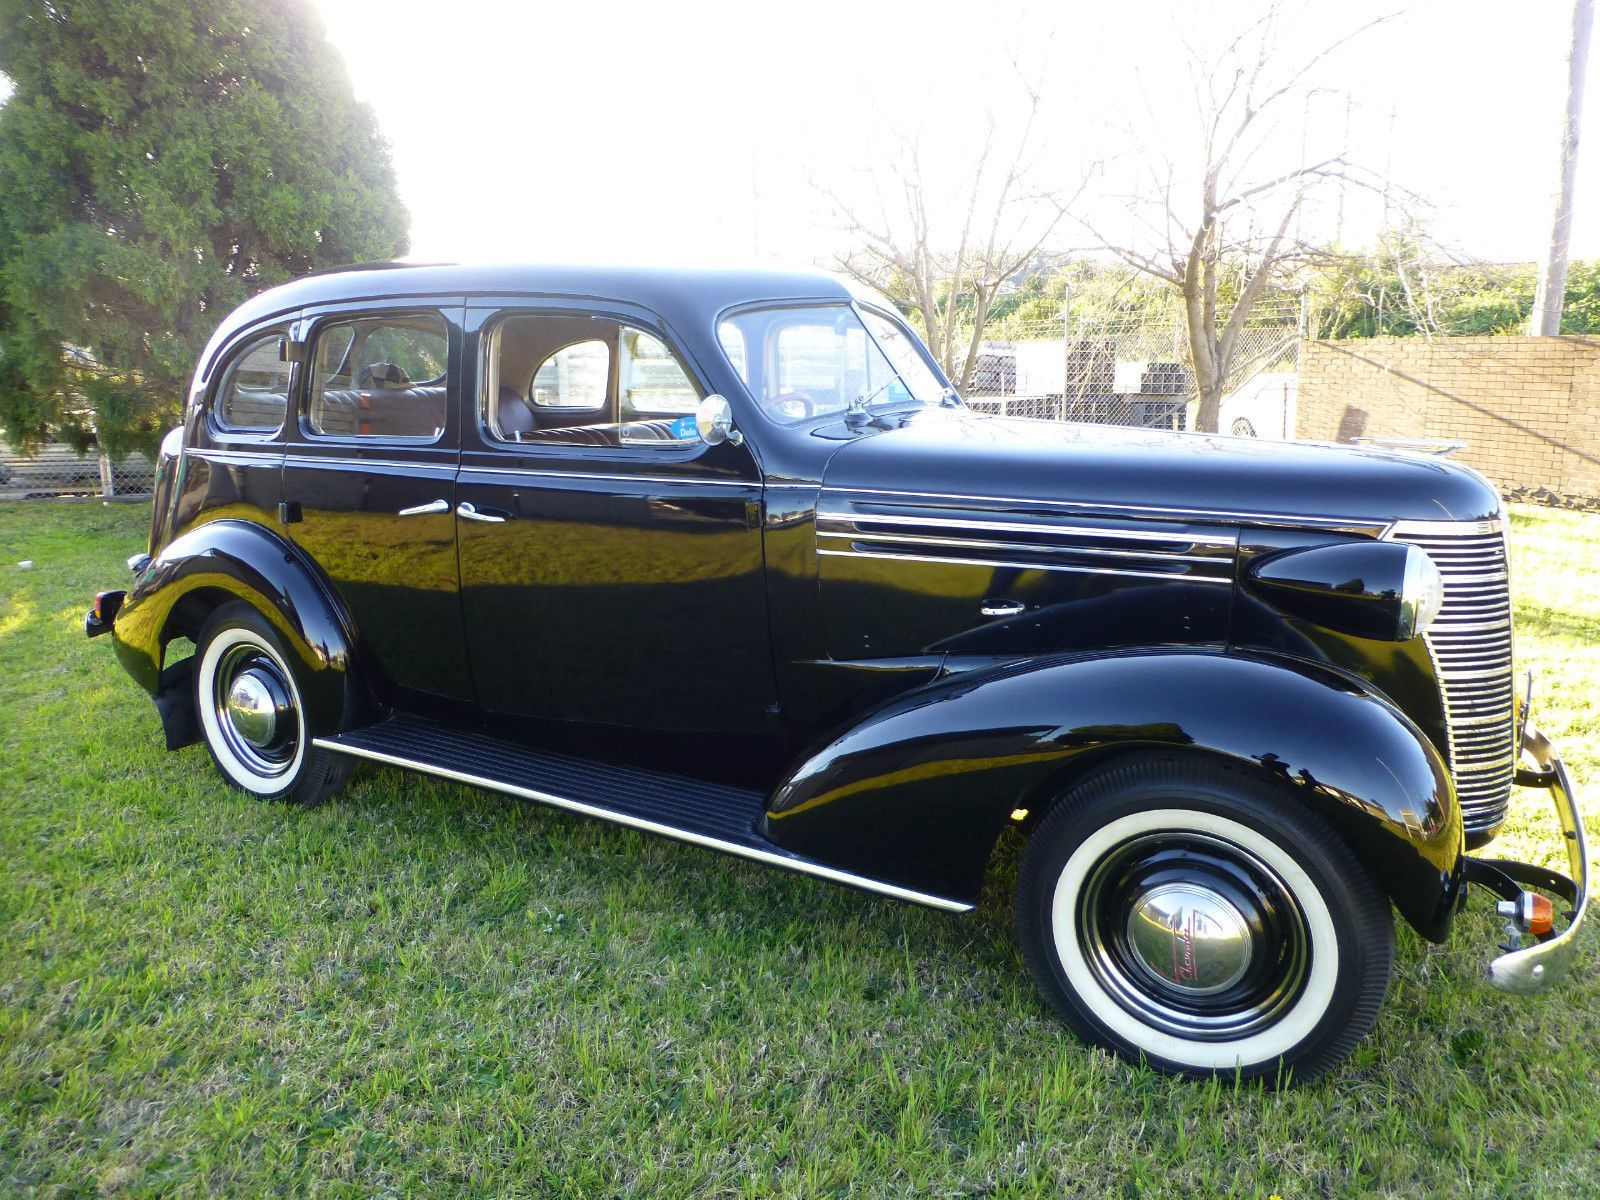 1938 Chevrolet Sedan Master Deluxe | CHEVY CLASSIC\'S, HOT RODS ...